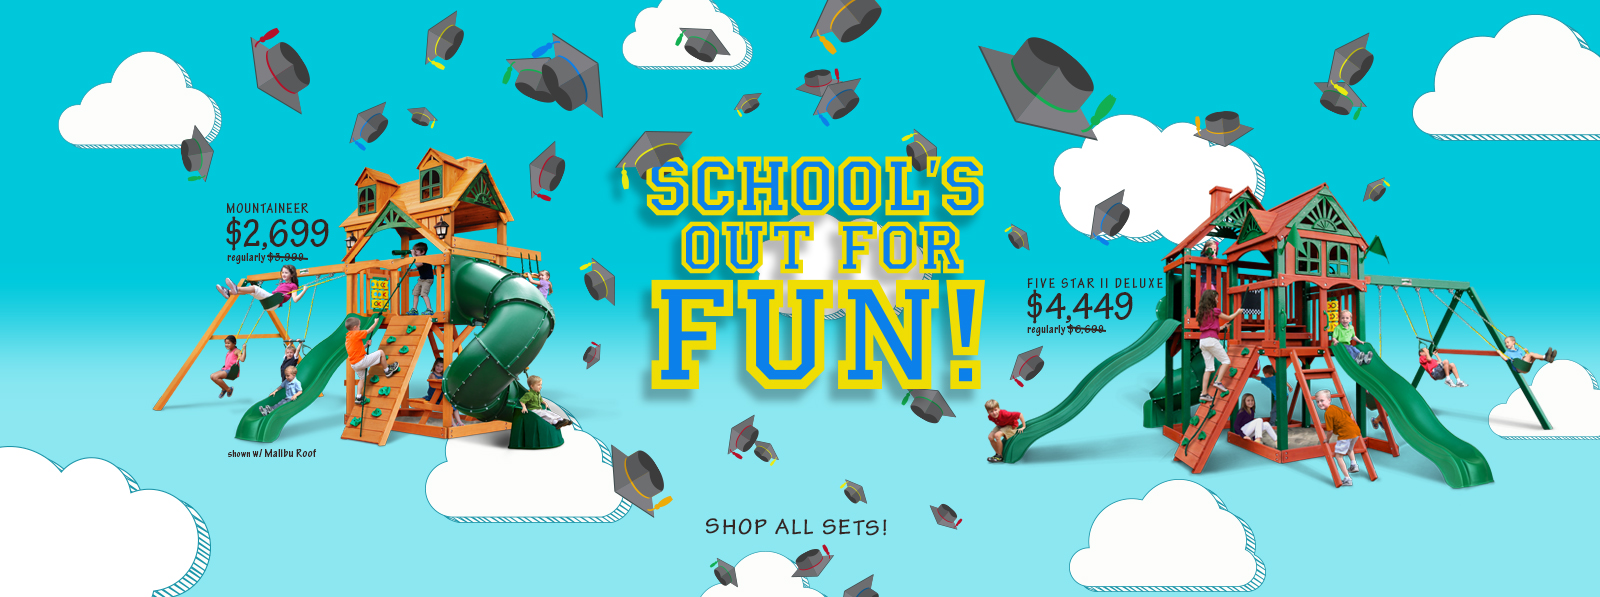 School's Out for Fun! Shop all Gorilla Sets Now!